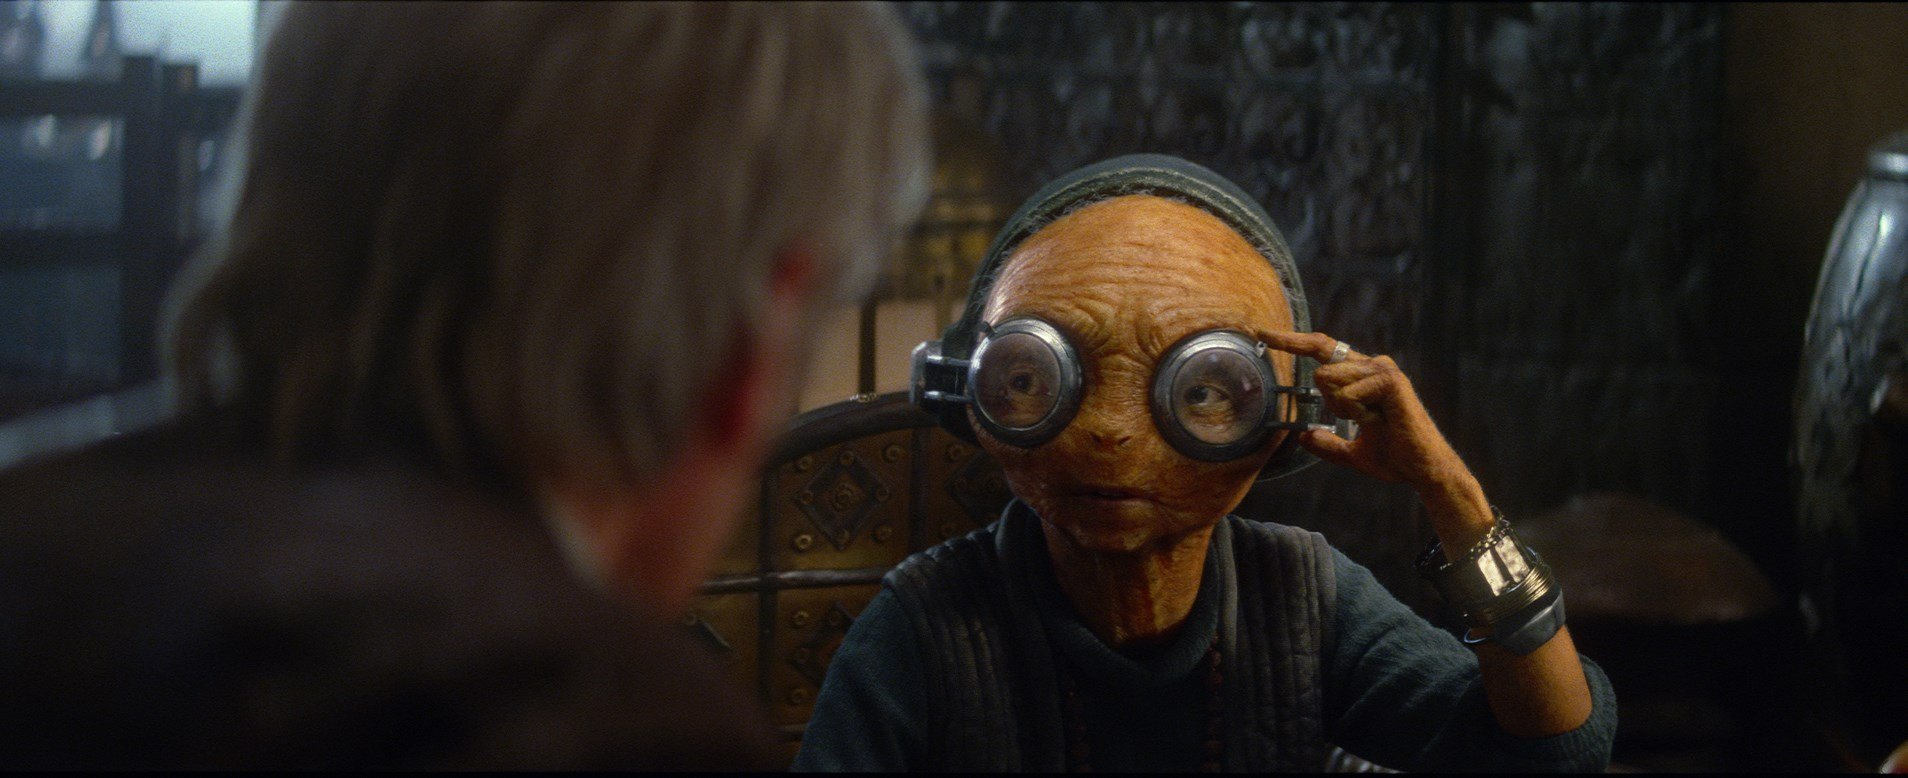 Maz kanata personnage dans star wars episode vii le r veil de la force disney planet - Personnage star wars 7 ...